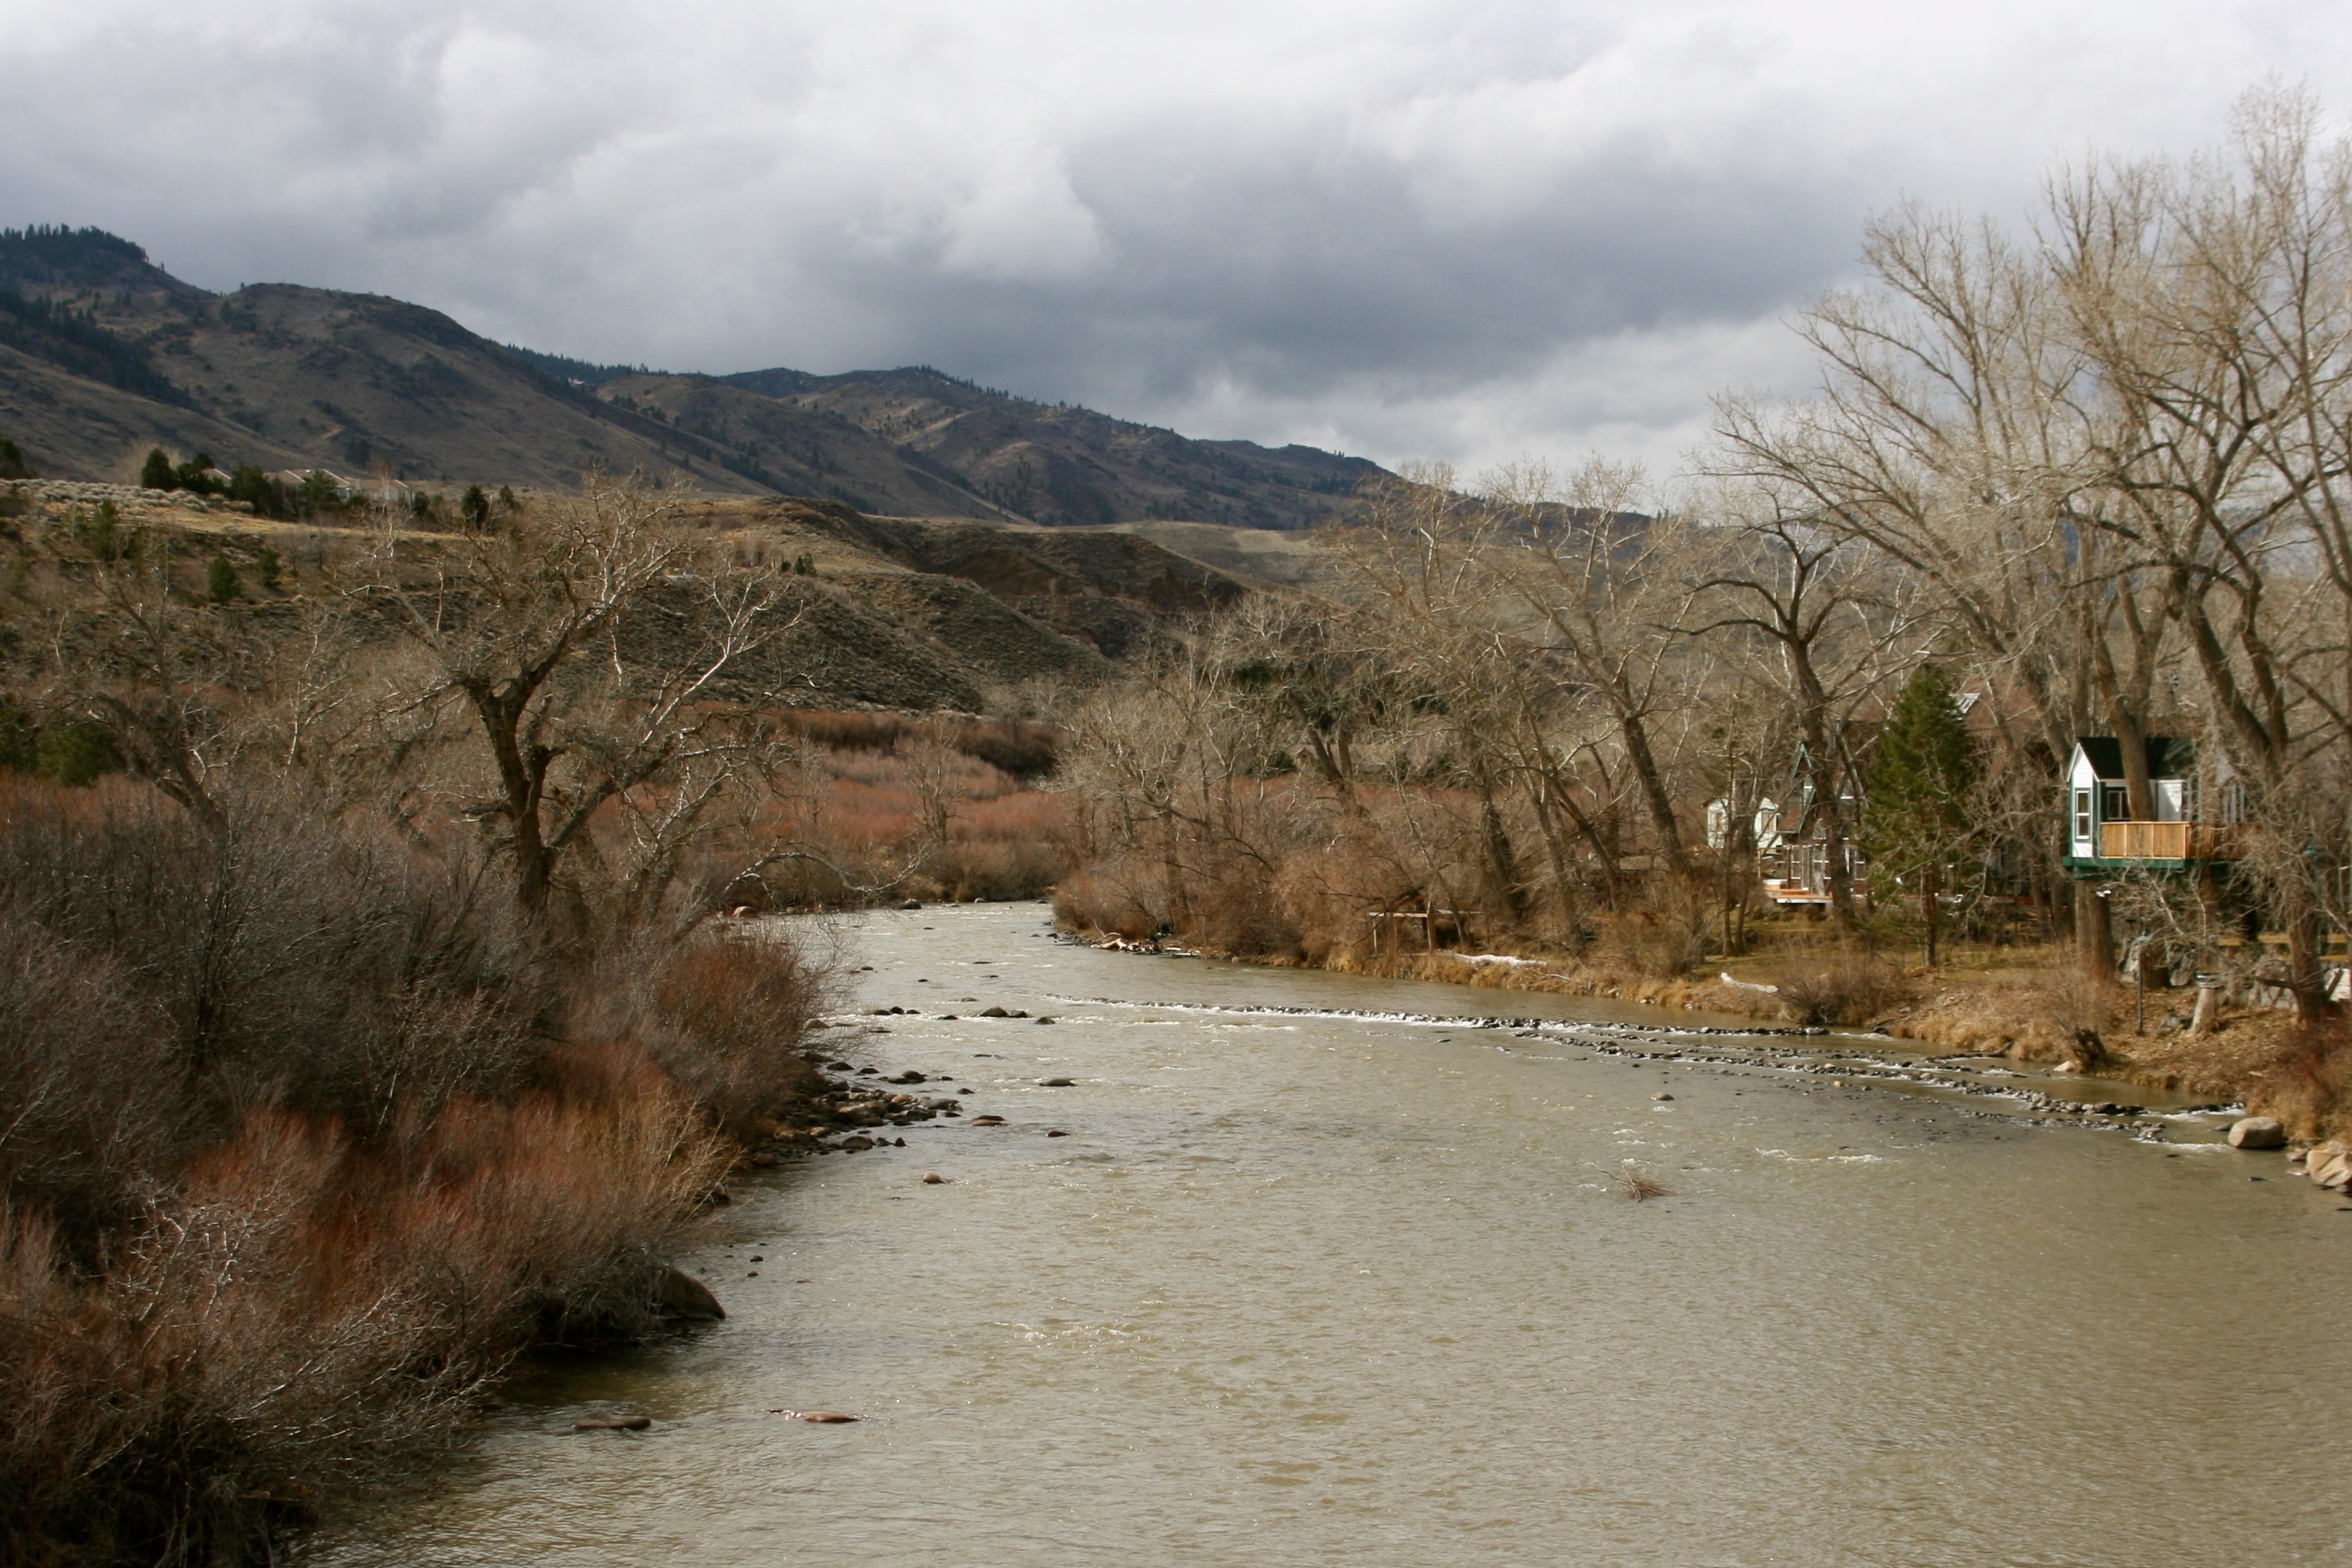 After the rain: The Truckee River from Dorostkar Park bridge, Feb 7, 2015.